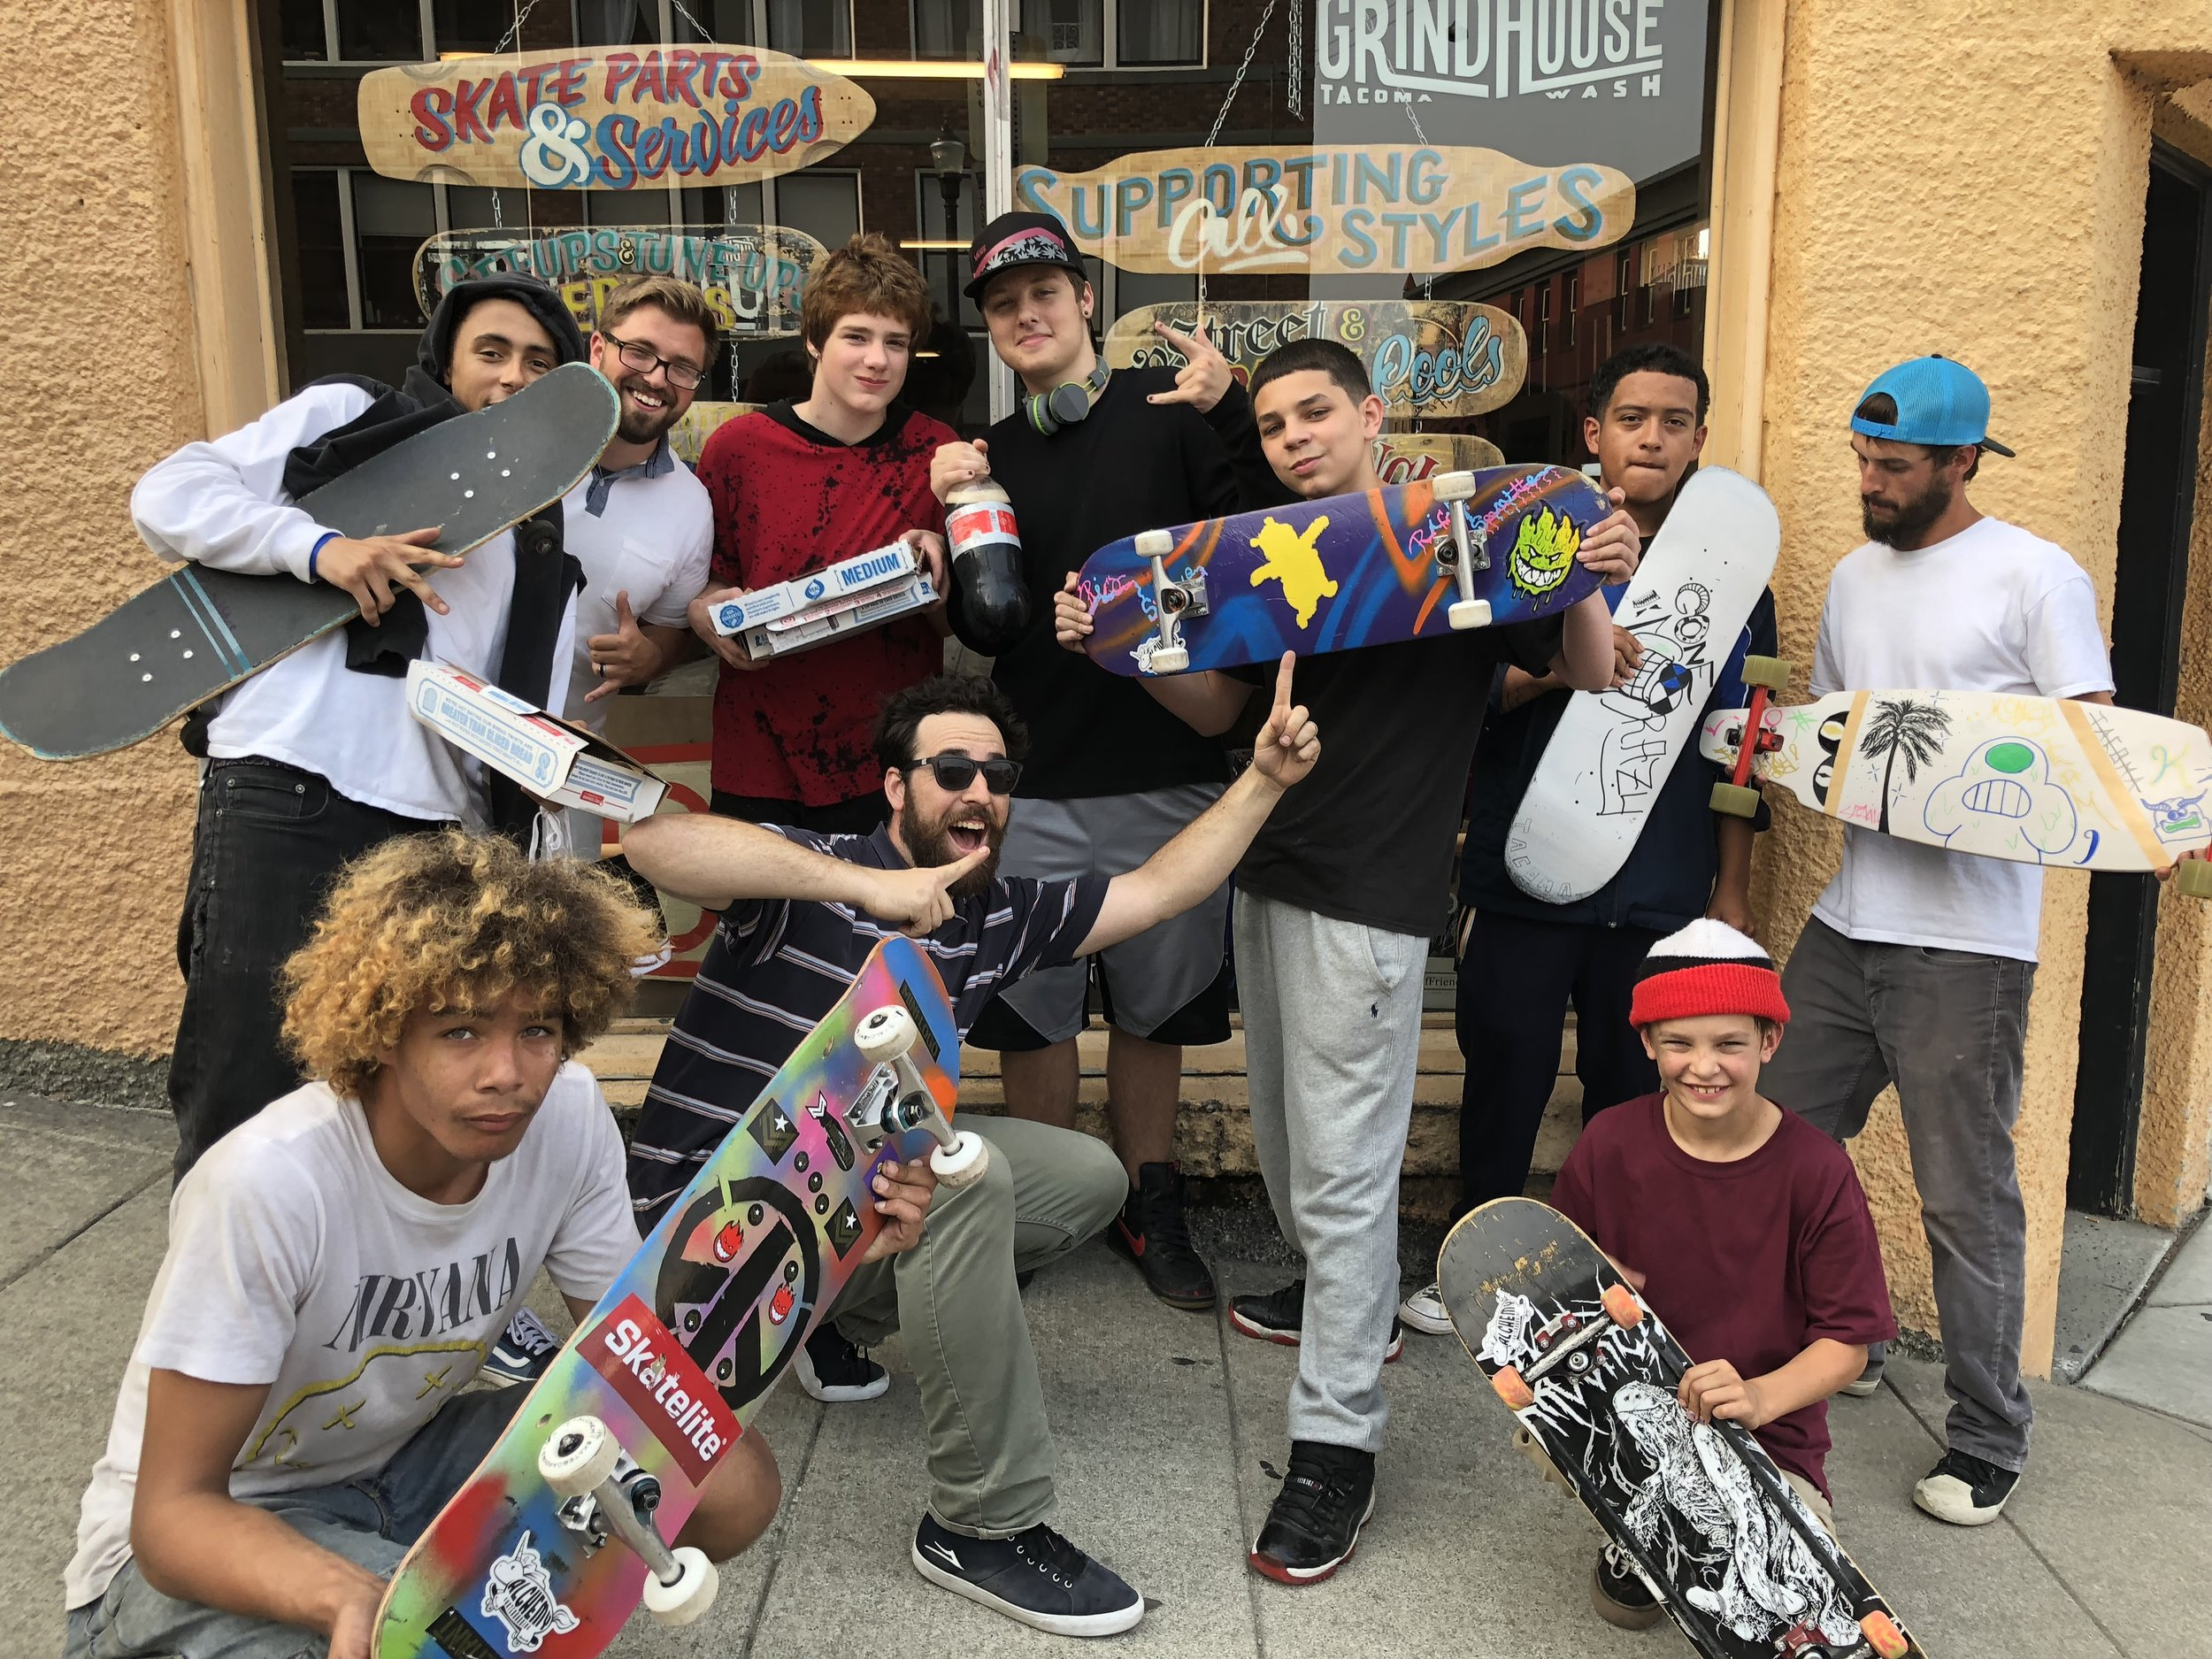 The METALS program is a community-based recidivism/prevention program for court-involved youth in Pierce County. We use skateboarding as a tool to help youth transition out of the Juvinille Court system and build a network of positive supporters, mentors, and friends.